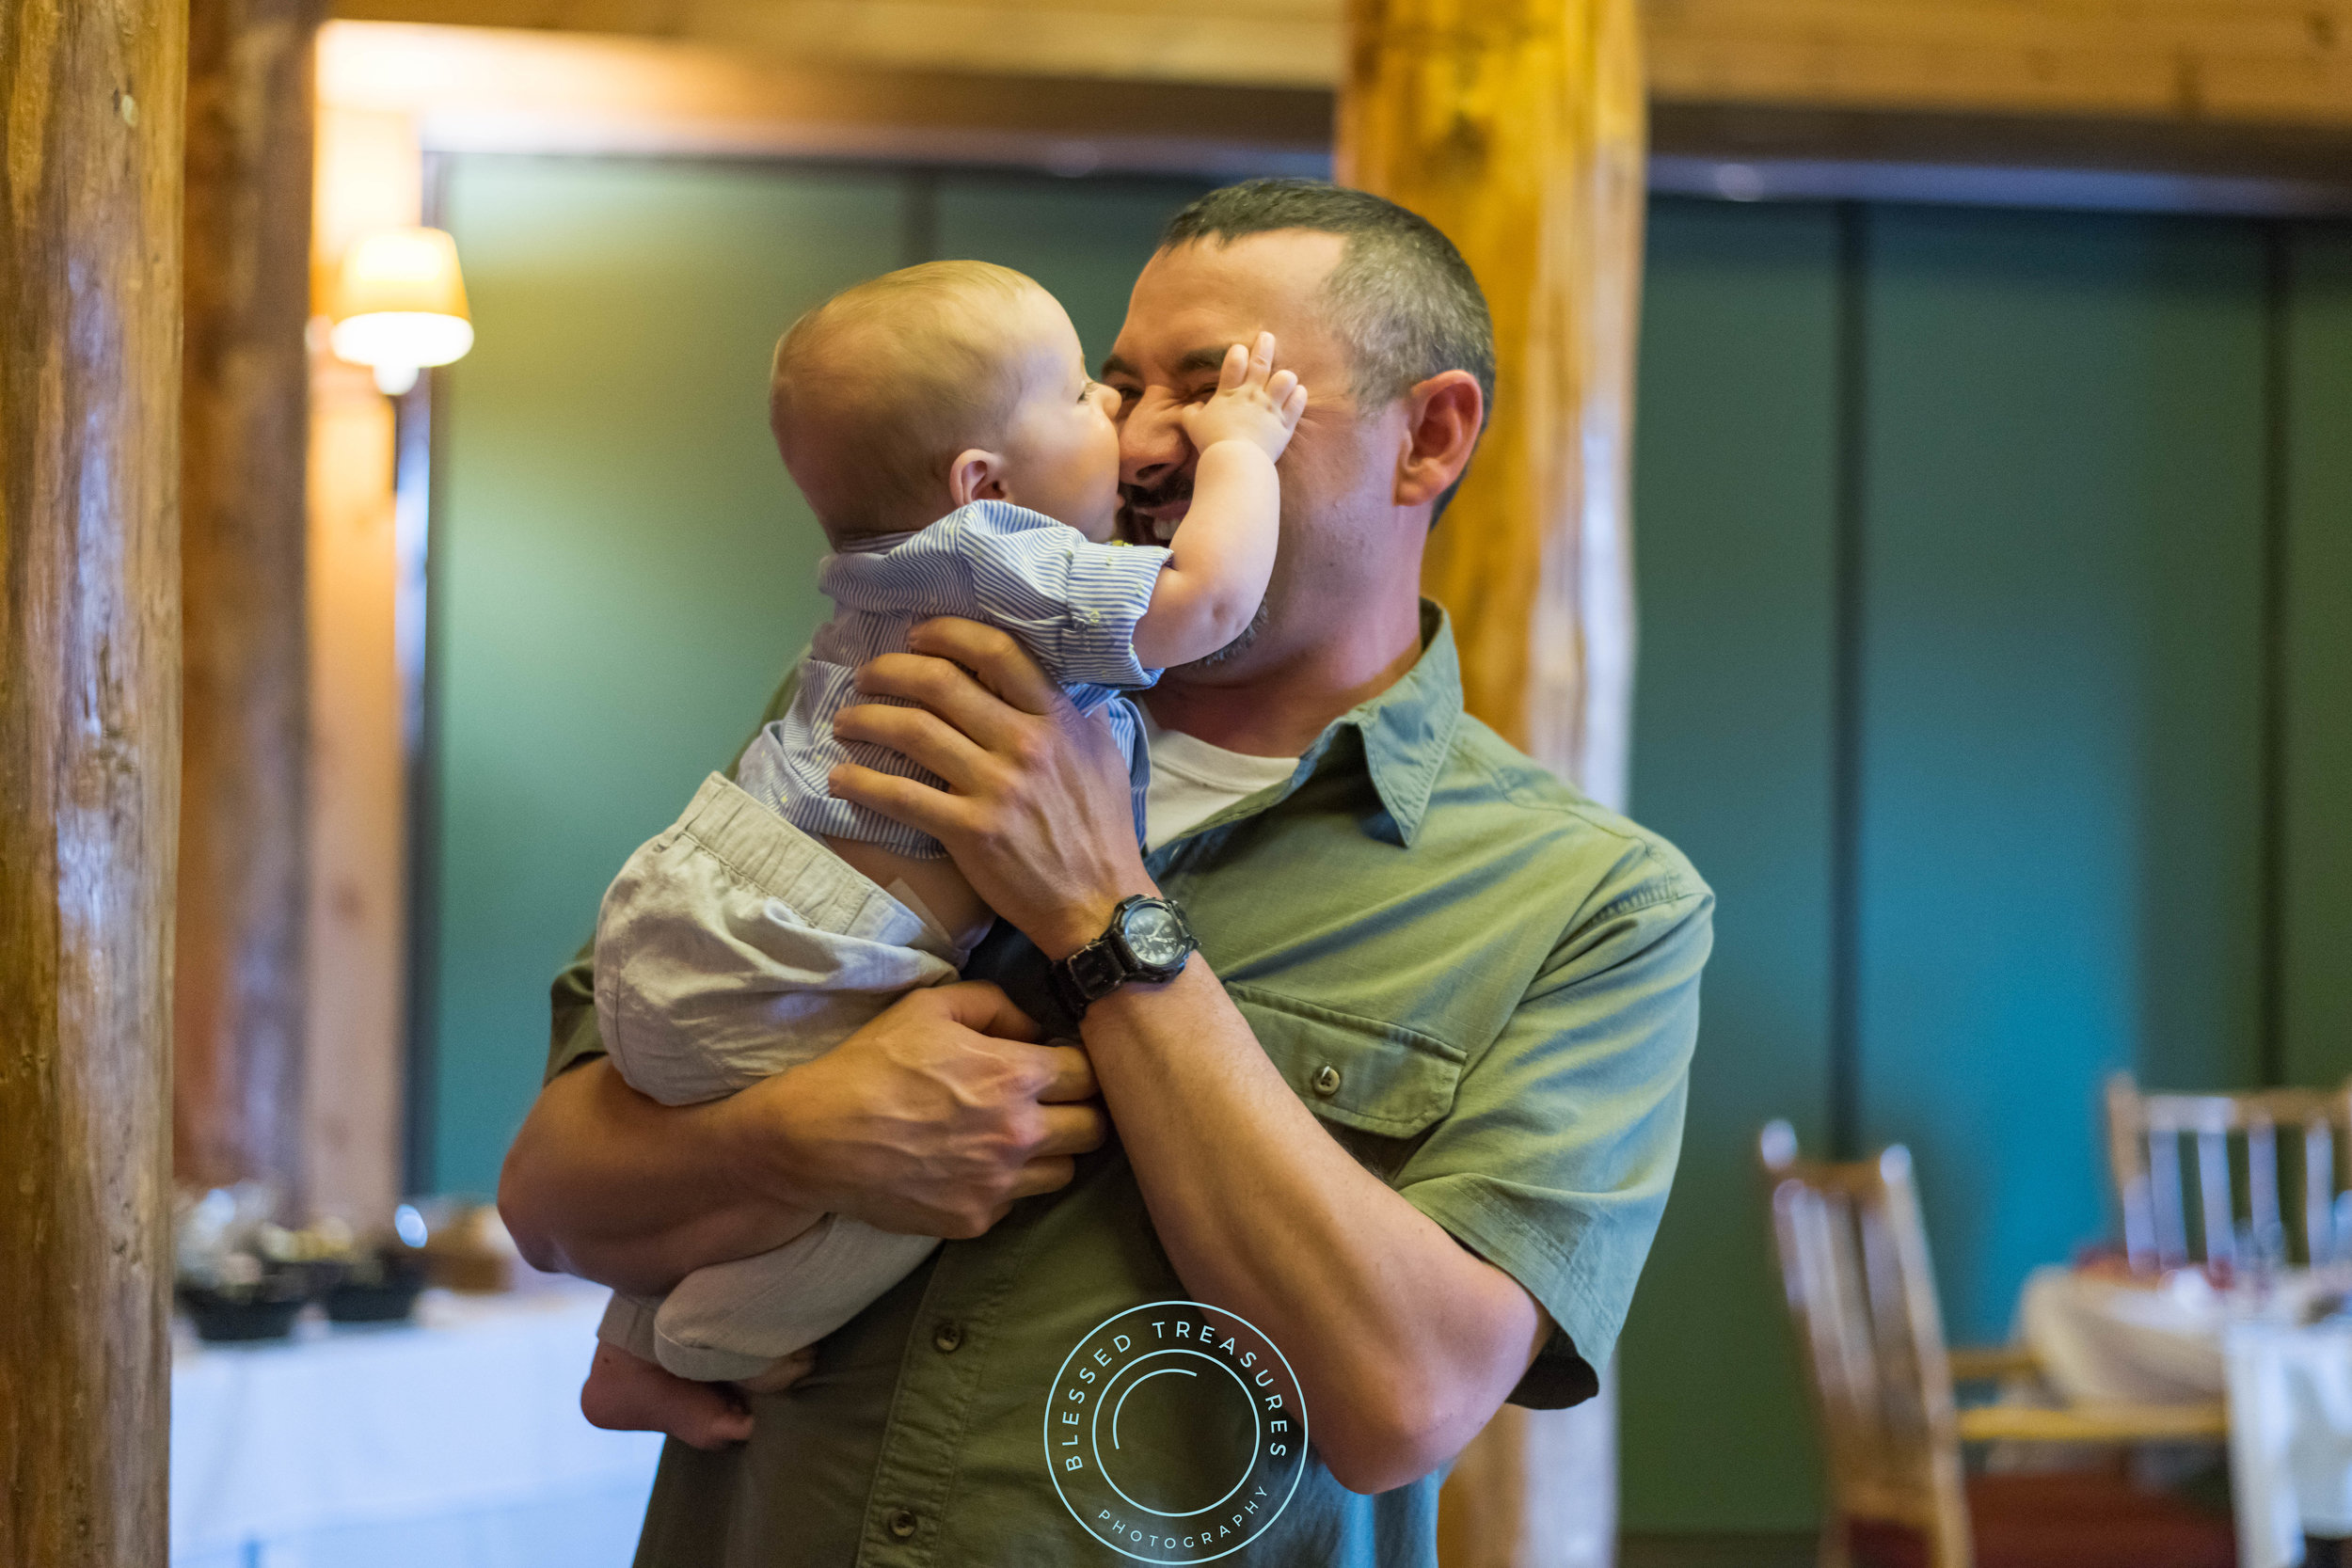 George Young complex banquet hall golf course iron river michigan wedding reception cute candid baby